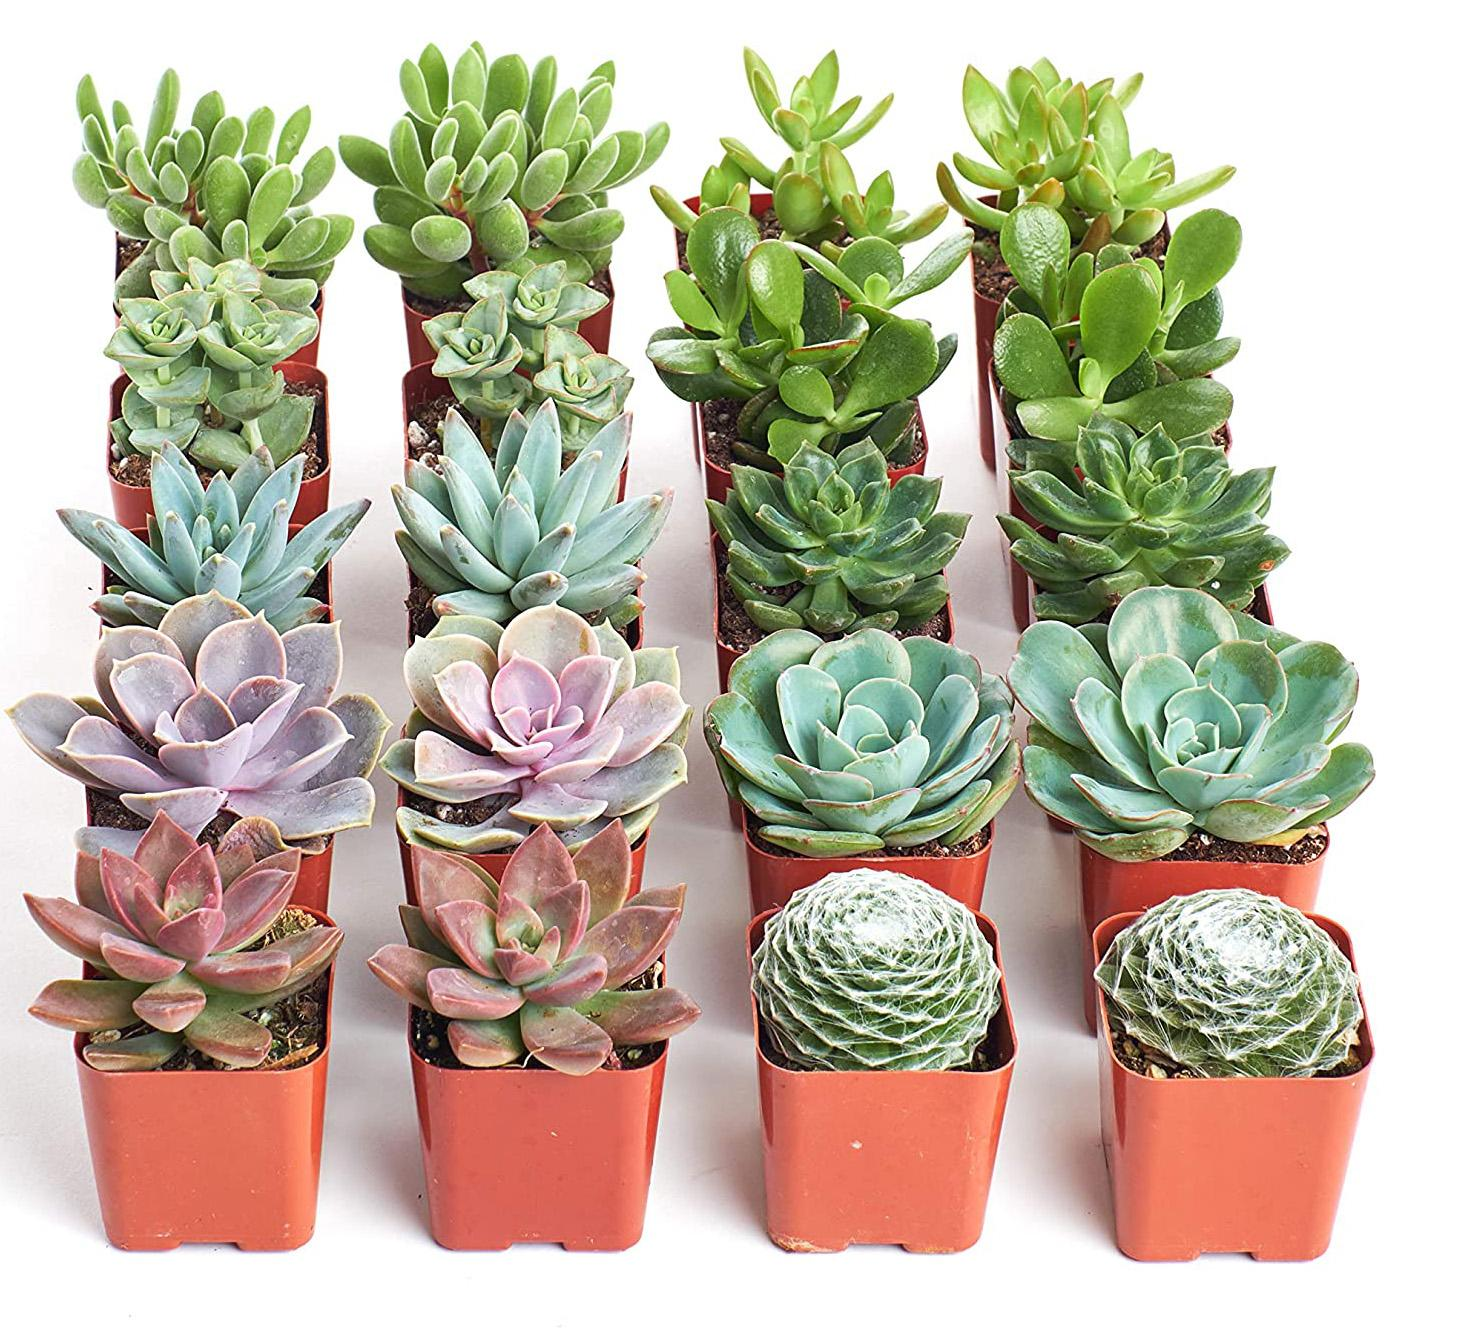 20 Shop Succulents Collection Assortment for $29.99 Shipped